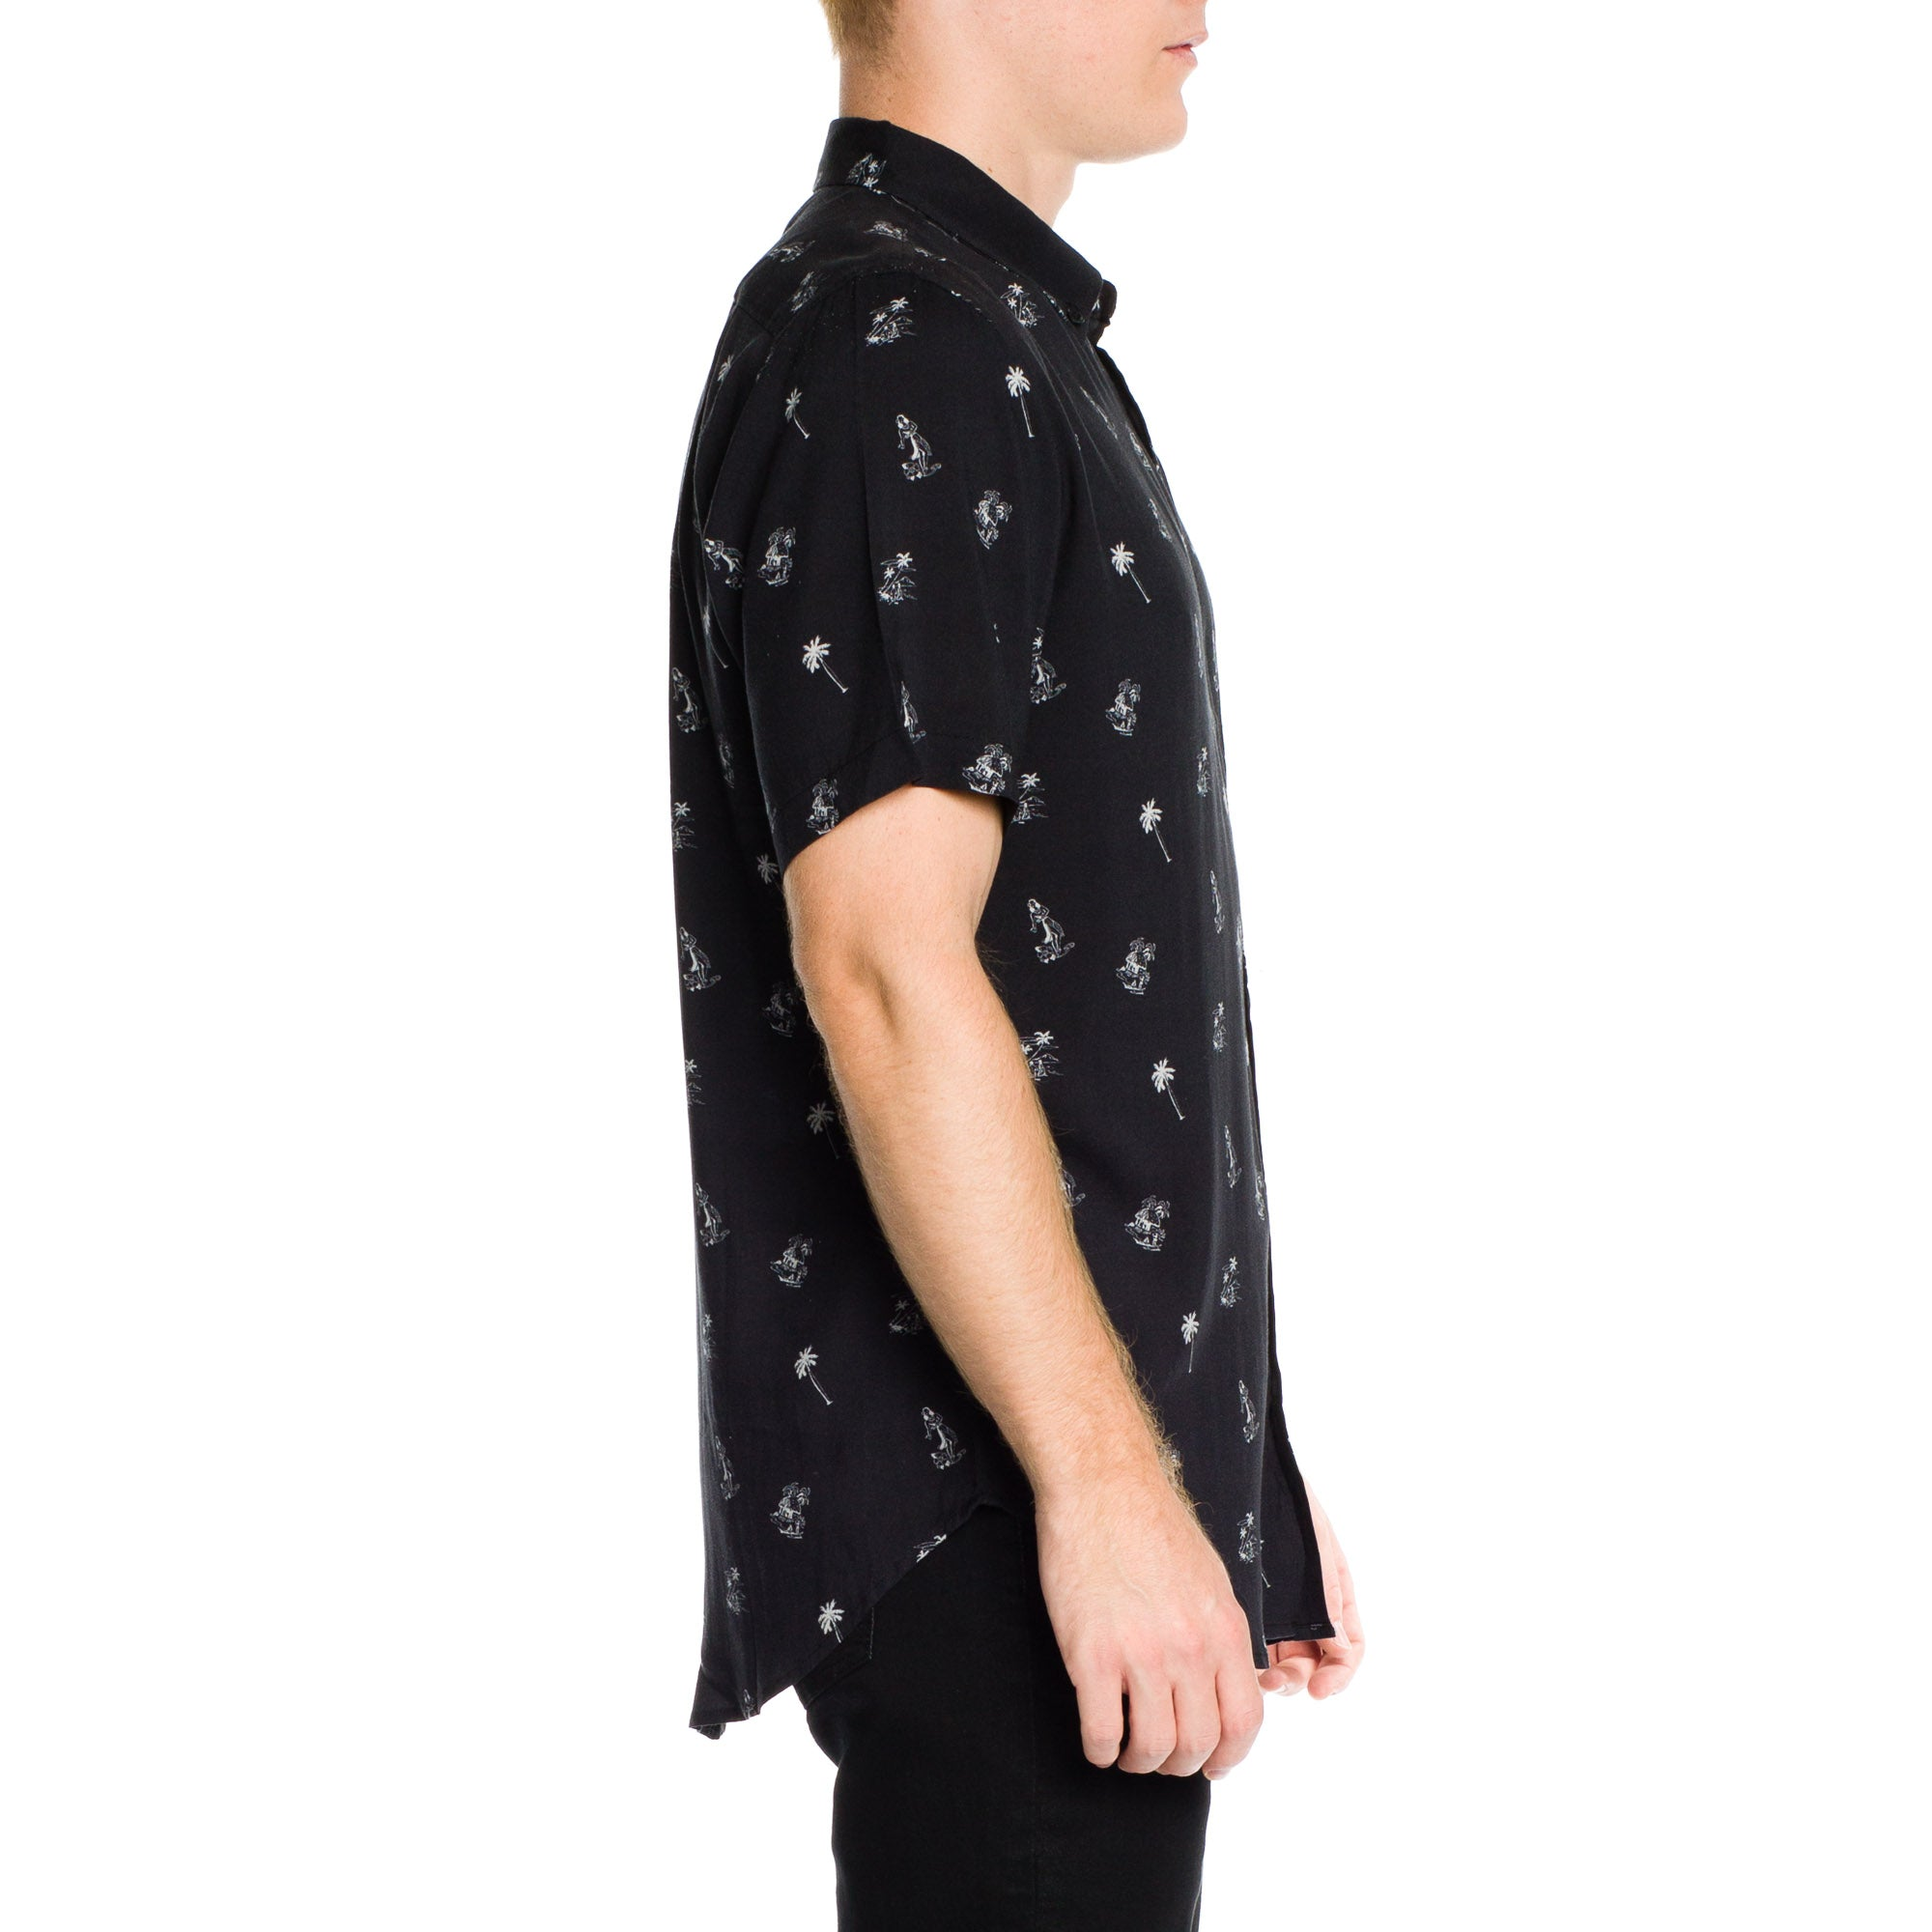 Vacation Shirt - Black - Ezekiel Clothing